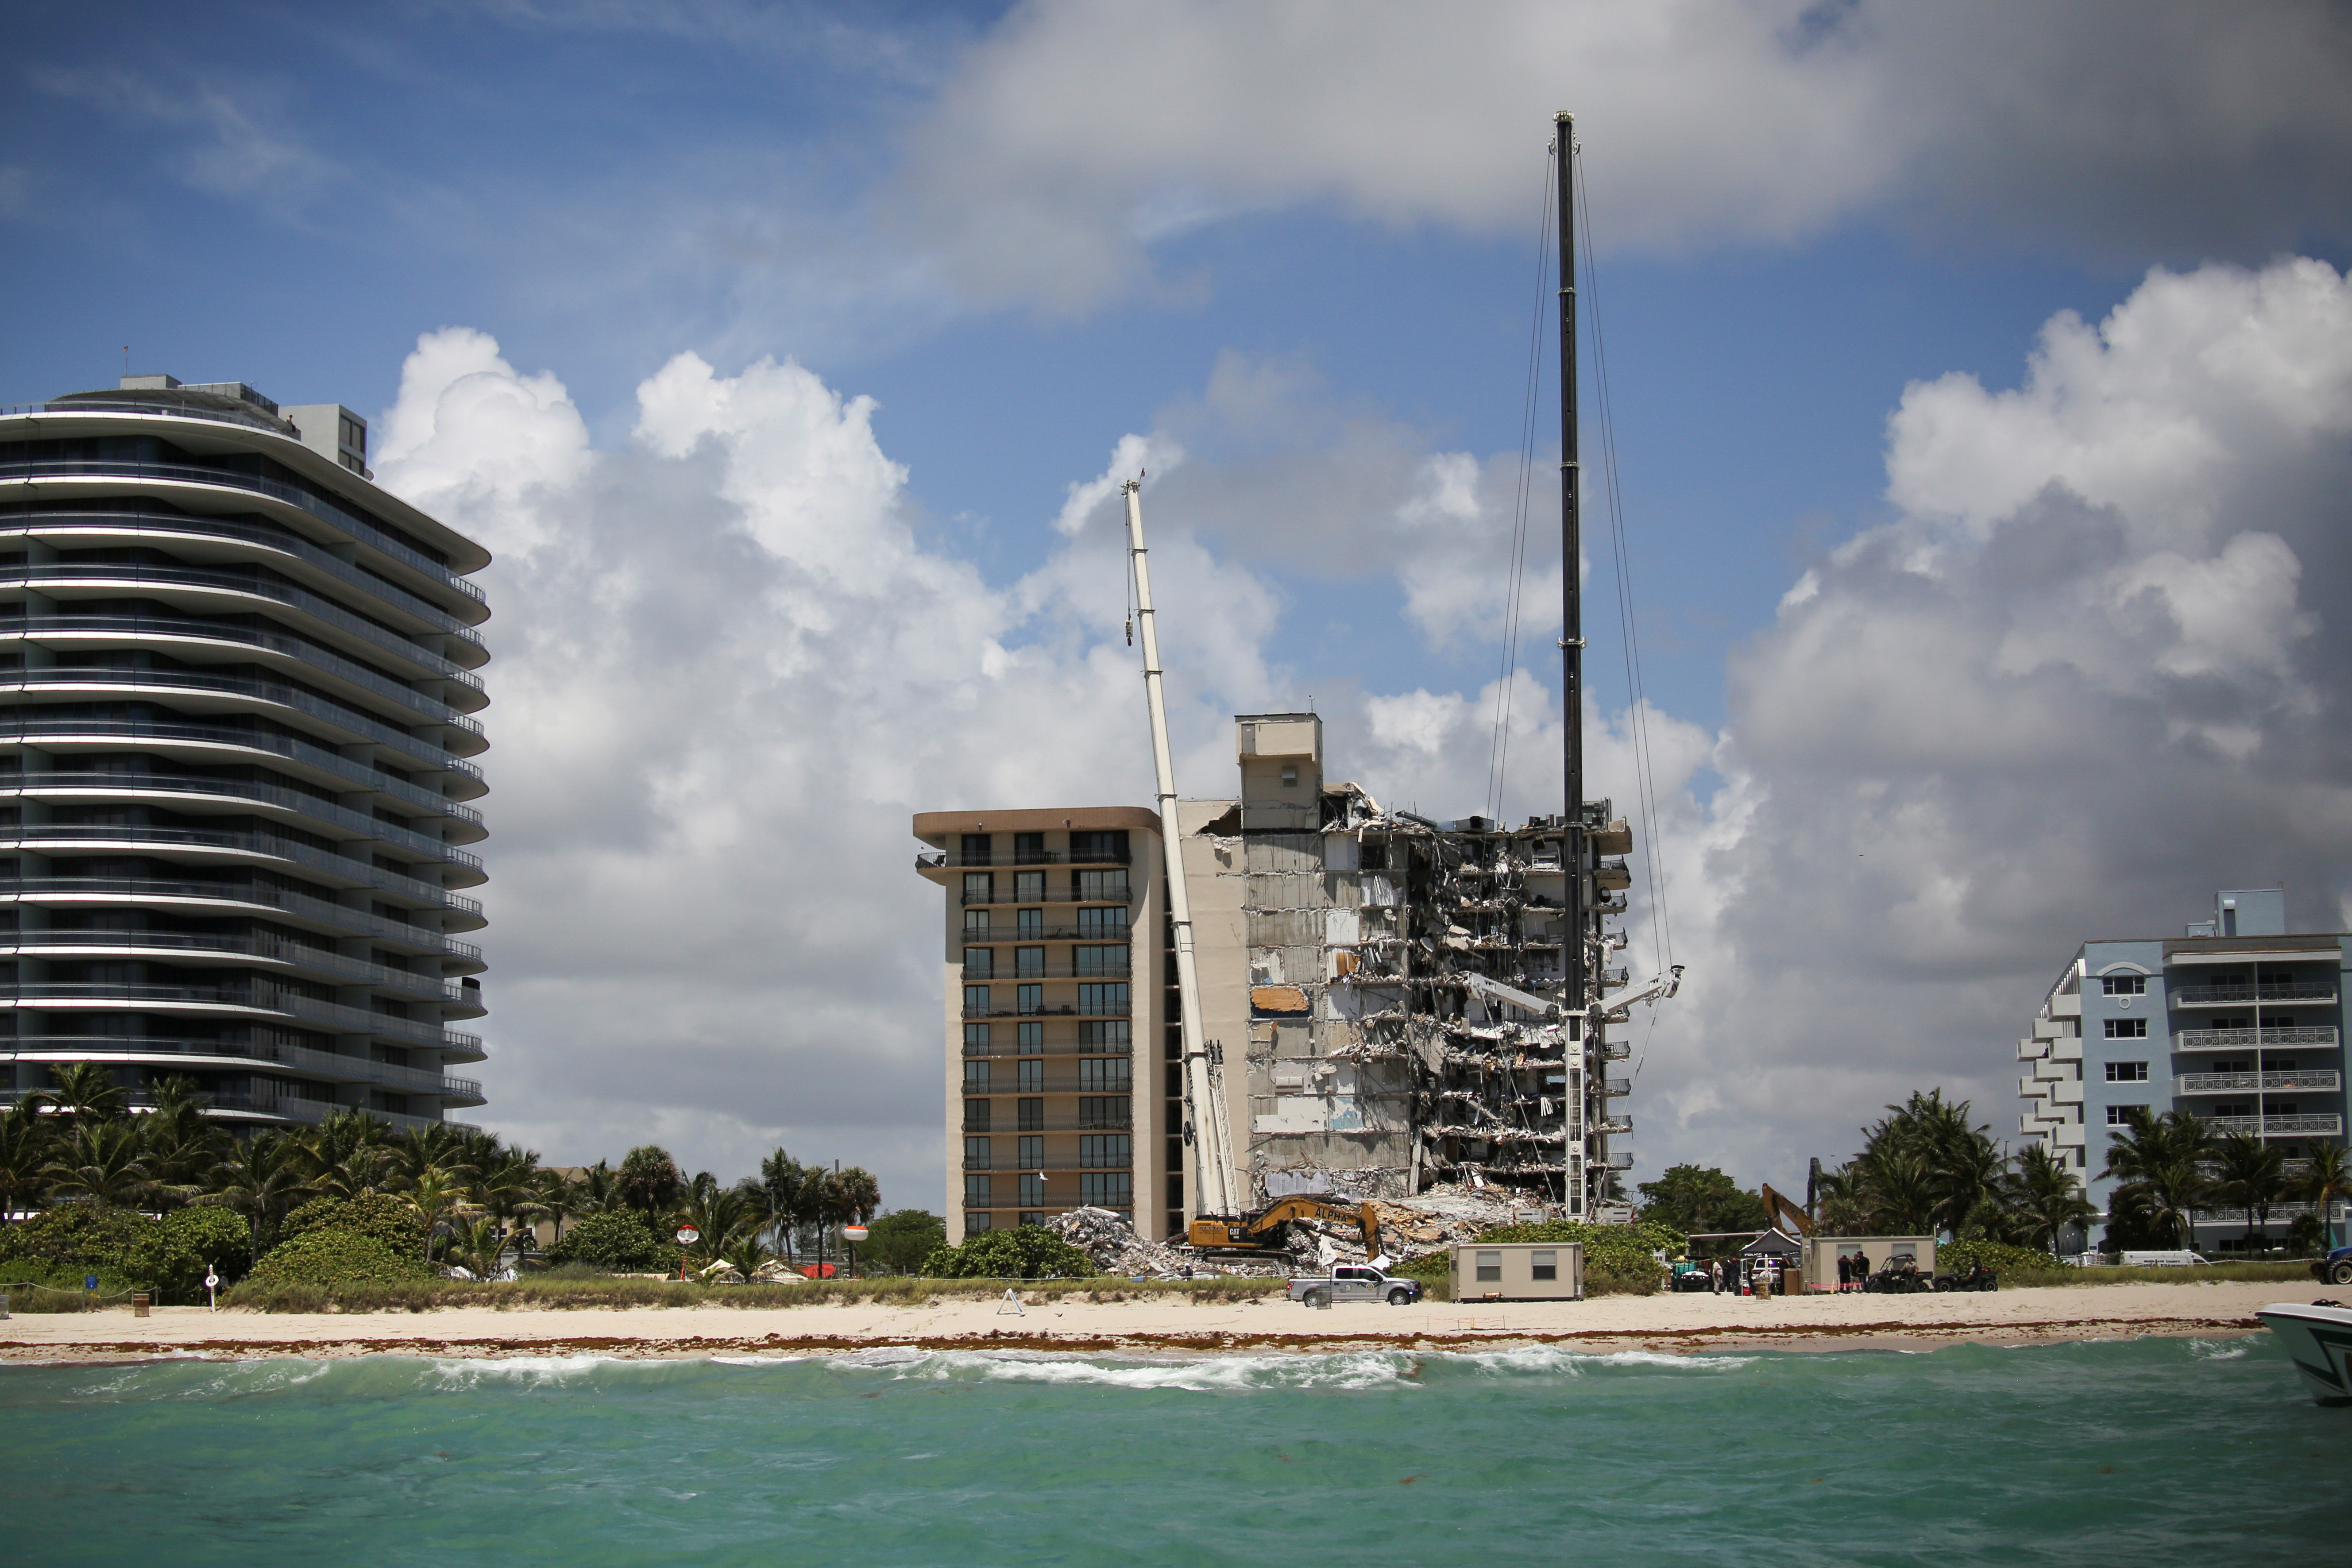 A general view of a partially collapsed residential building as the emergency crews continue search and rescue operations for survivors, in Surfside, near Miami Beach, Florida, U.S. June 27, 2021. REUTERS/Marco Bello